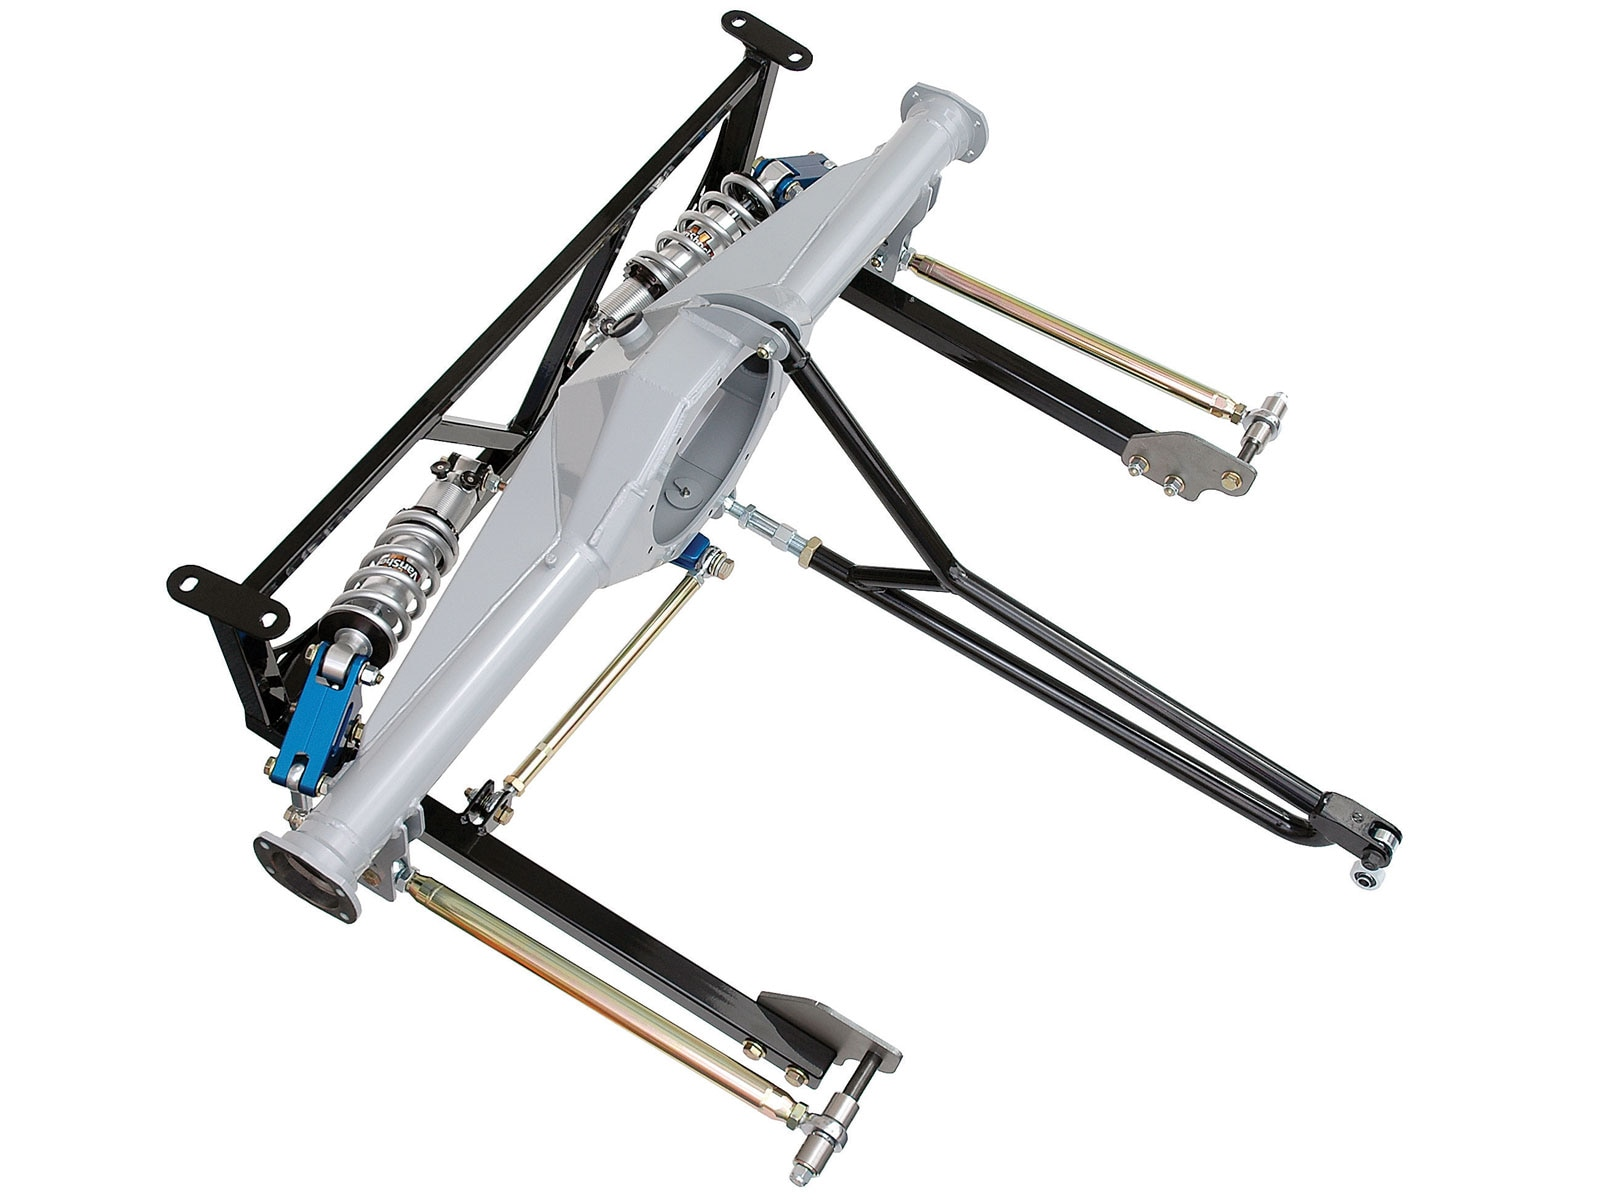 Suspension Systems Advance Rear Suspension